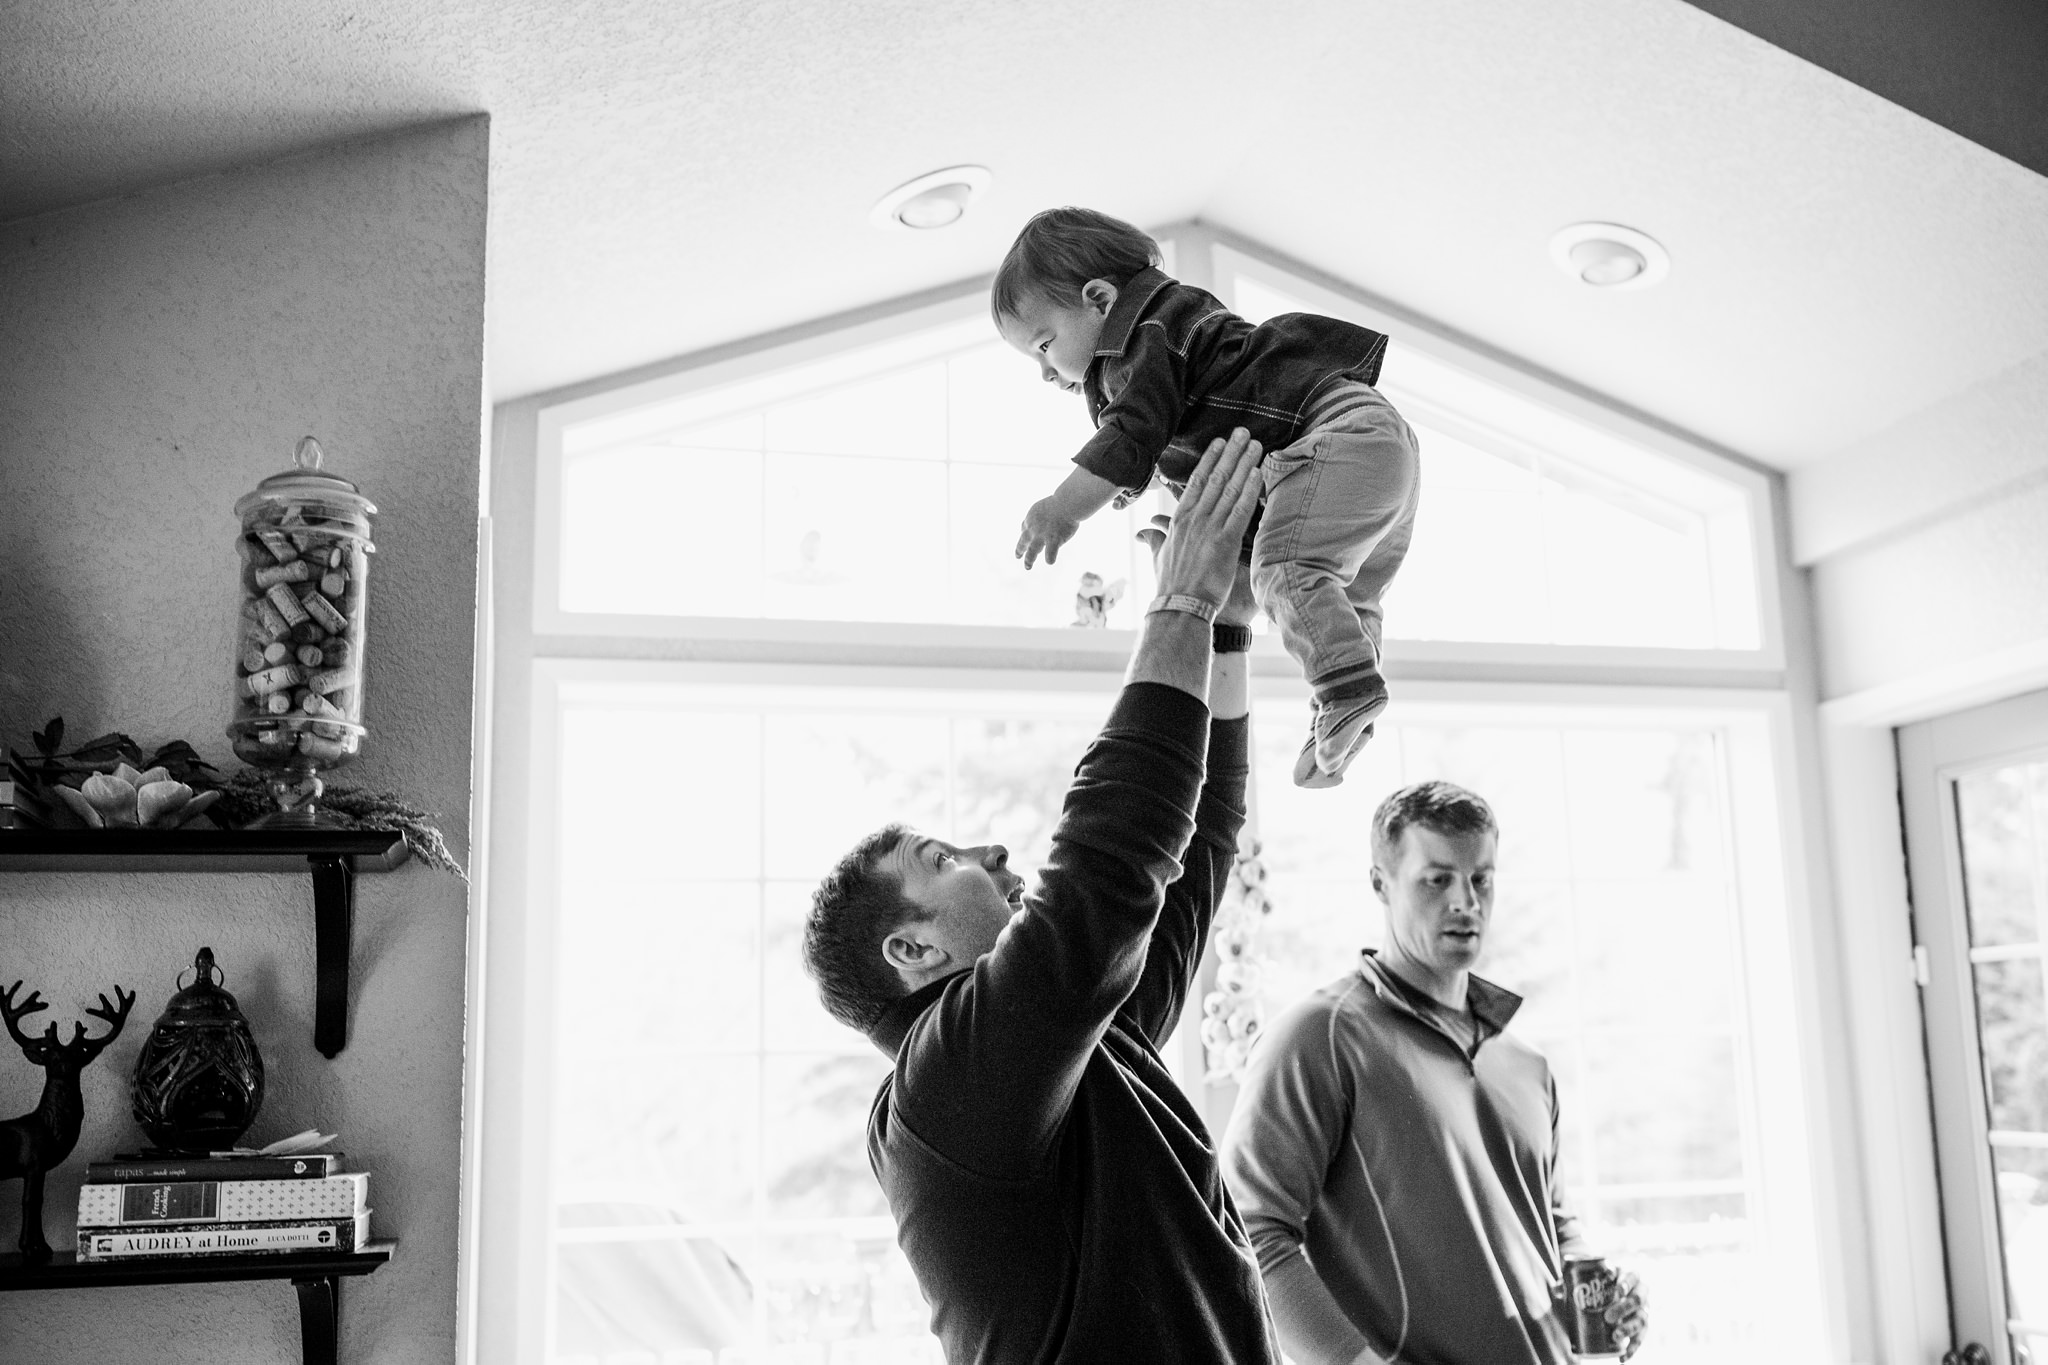 Whidbey-Island-Family-Photographer-Kara-Chappell-Photography_1883.jpg